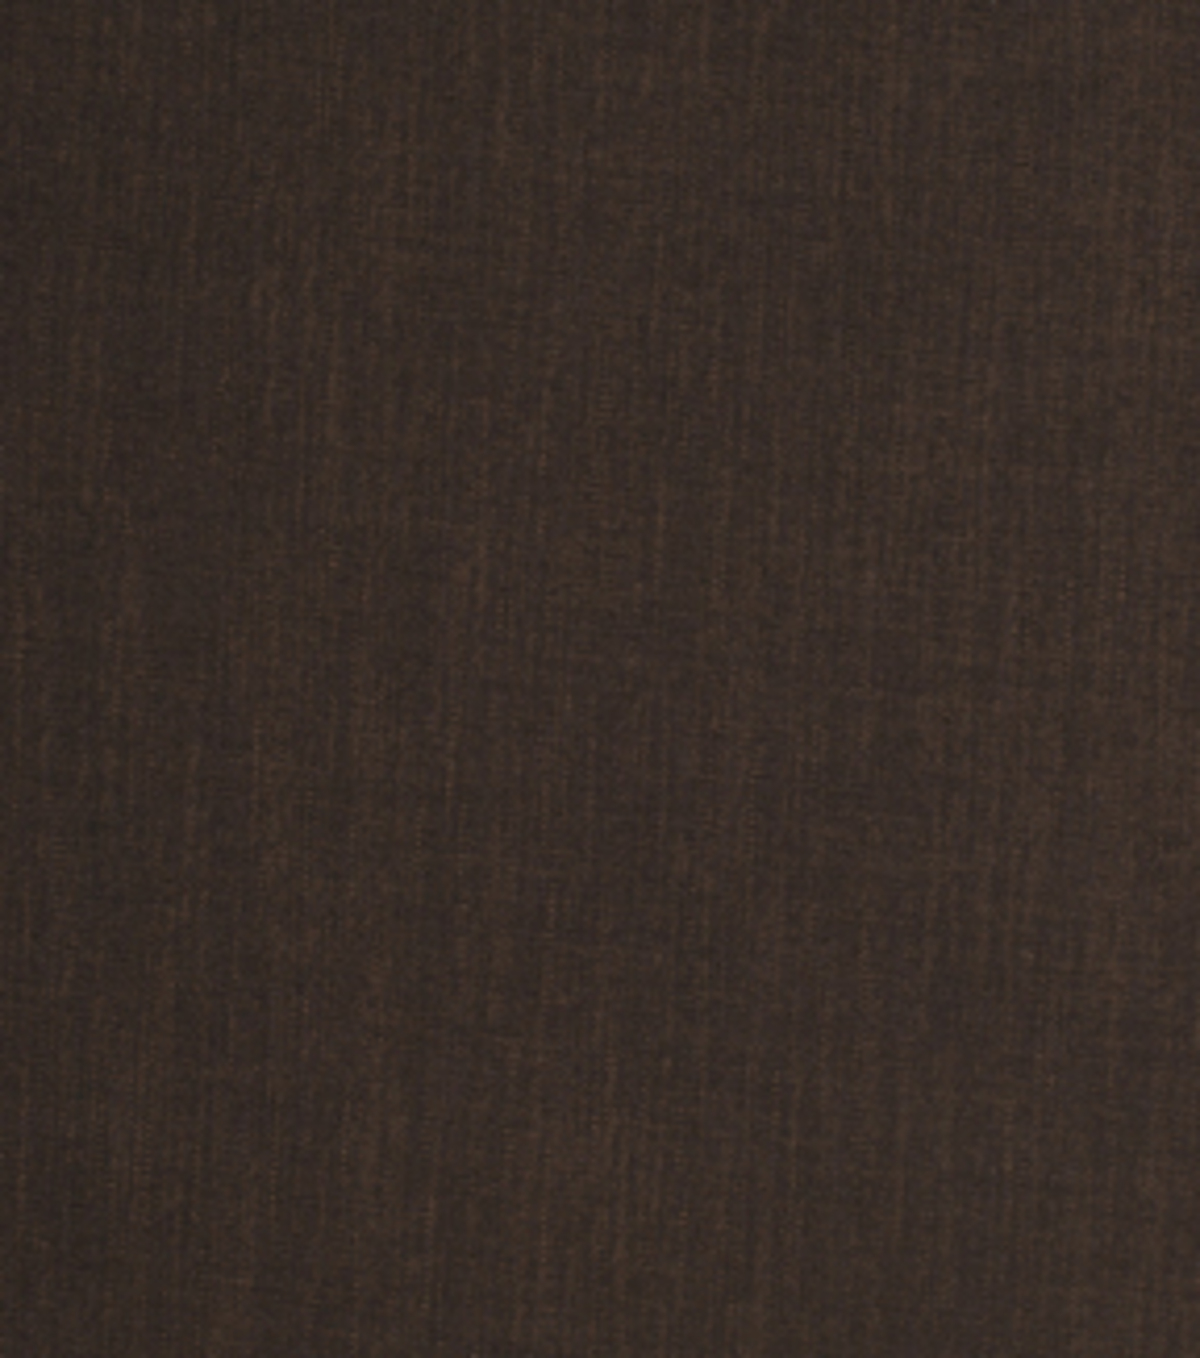 Home Decor 8\u0022x8\u0022 Fabric Swatch-Signature Series Media Cocoa